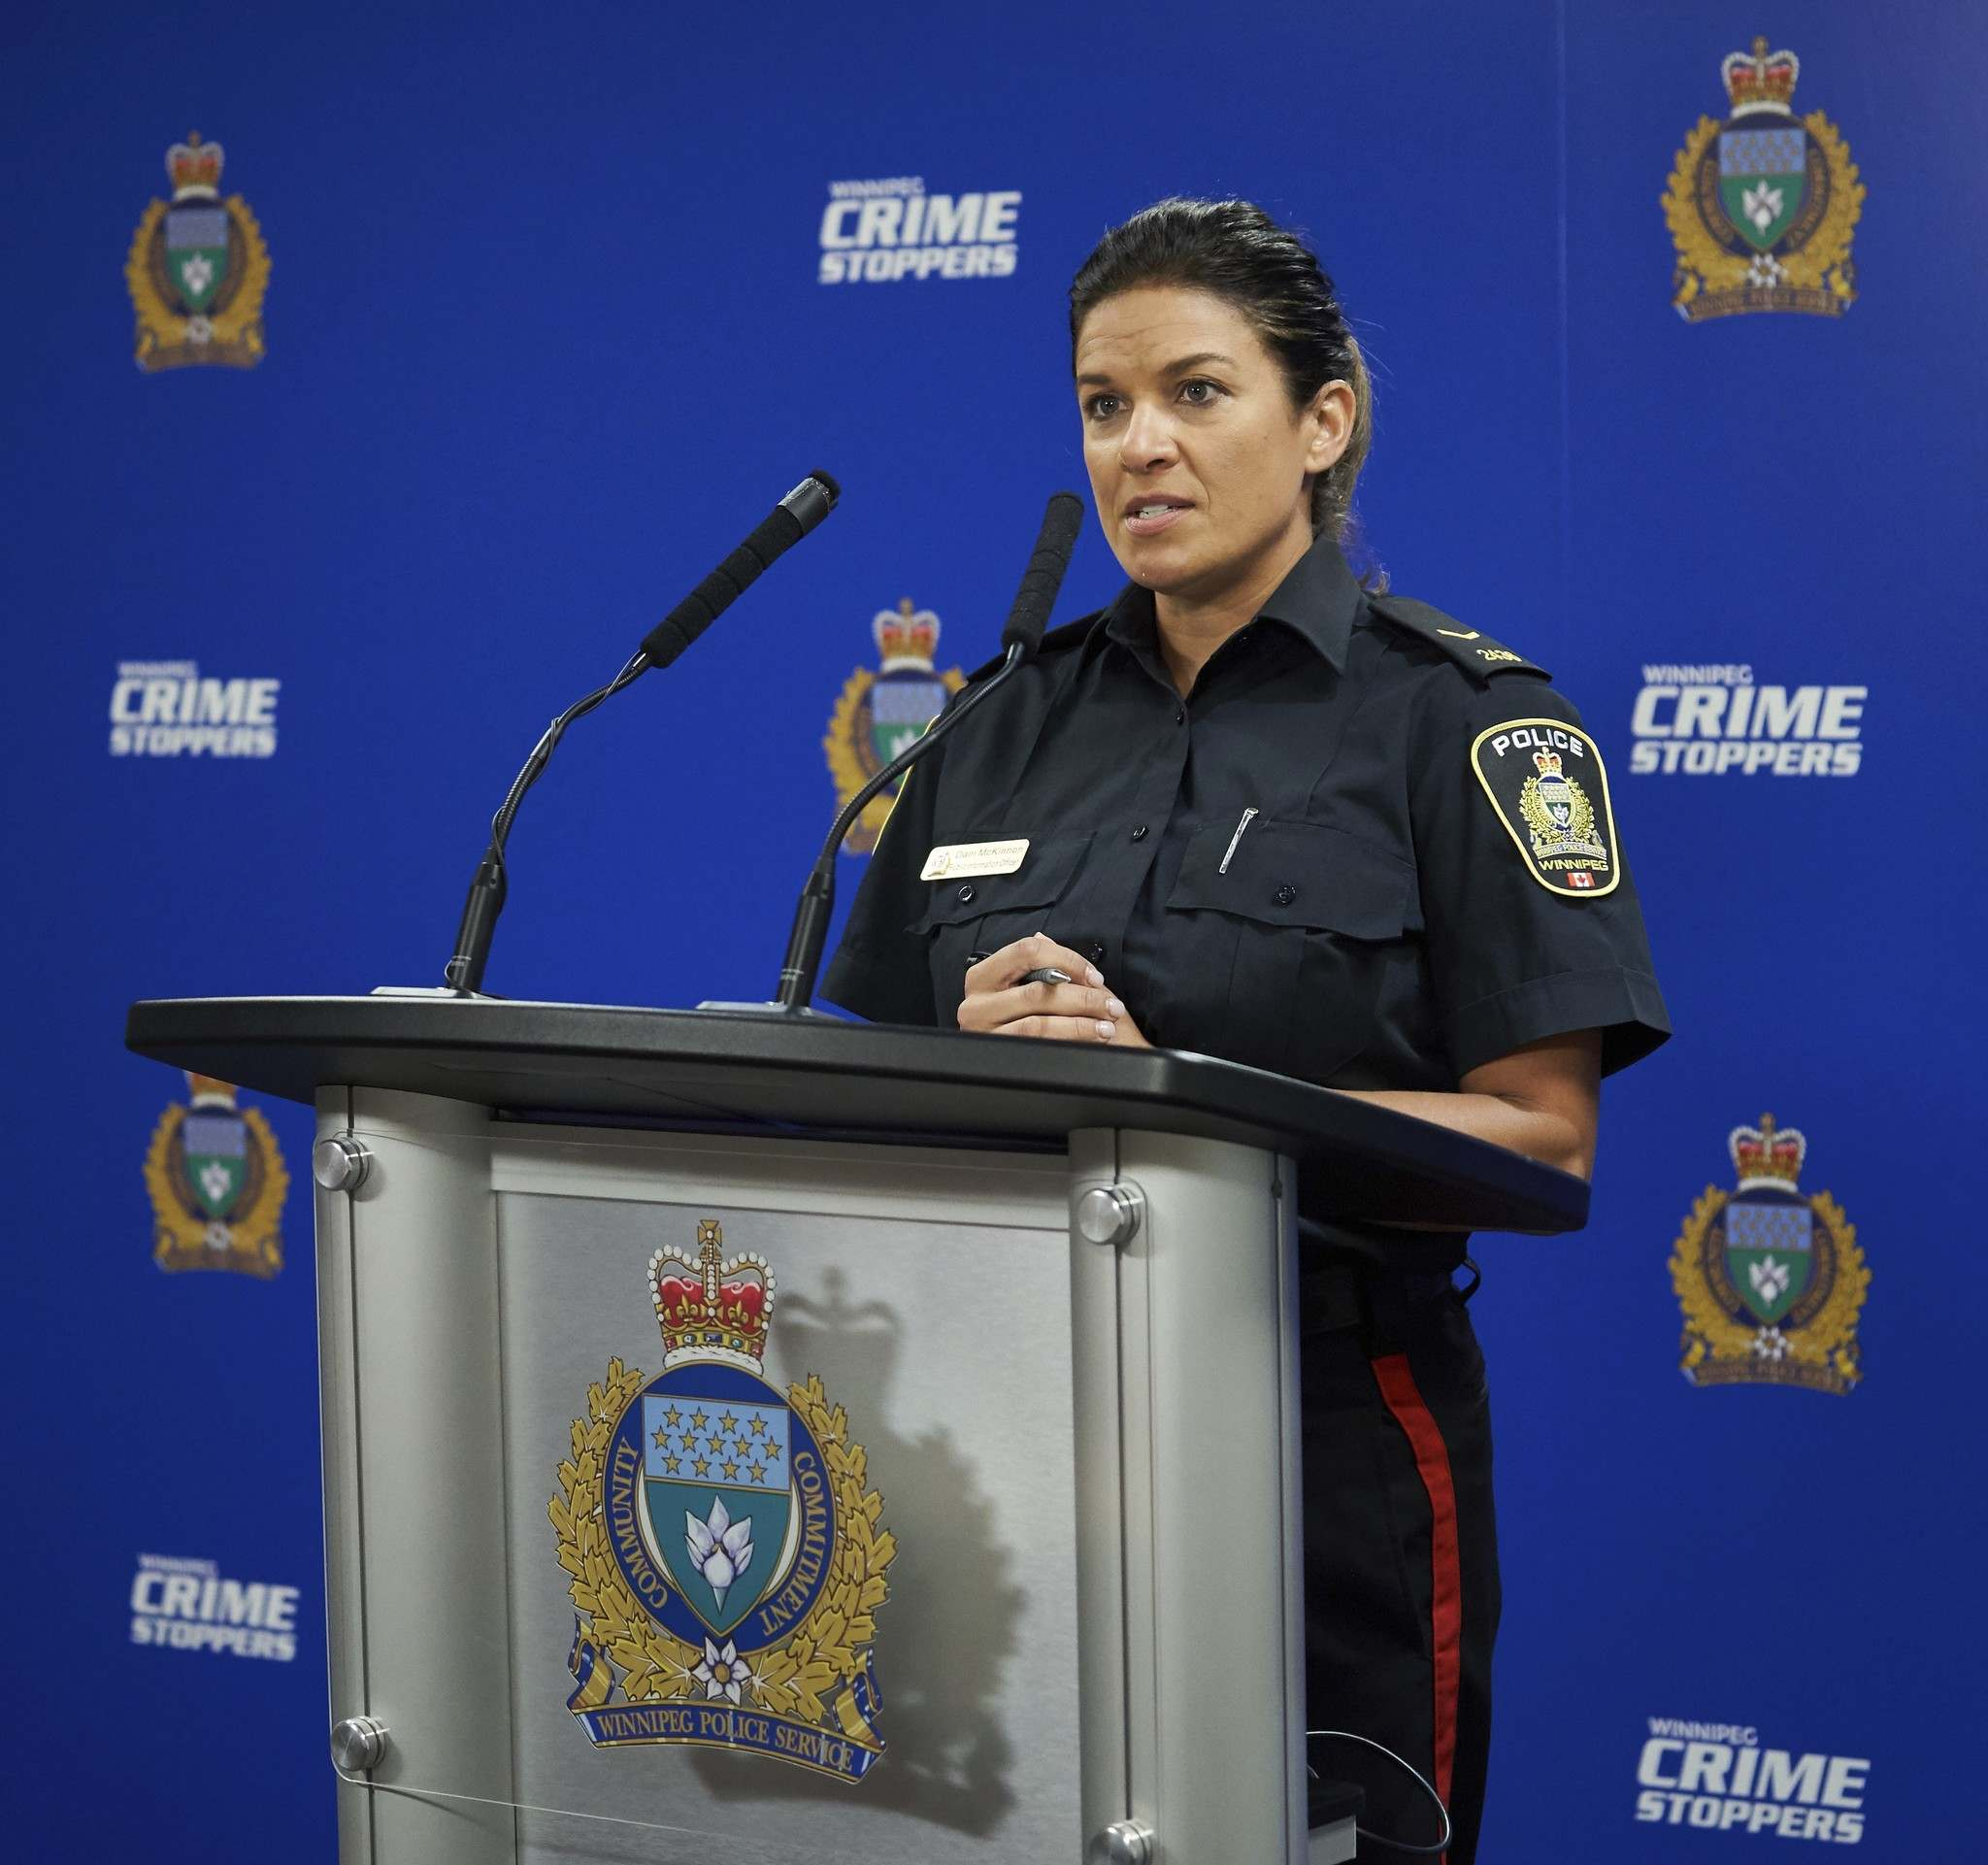 The alleged victims were abused on more than one occasion, says Winnipeg police Const. Dani McKinnon. (David Lipnowski / The Canadian Press)</p>